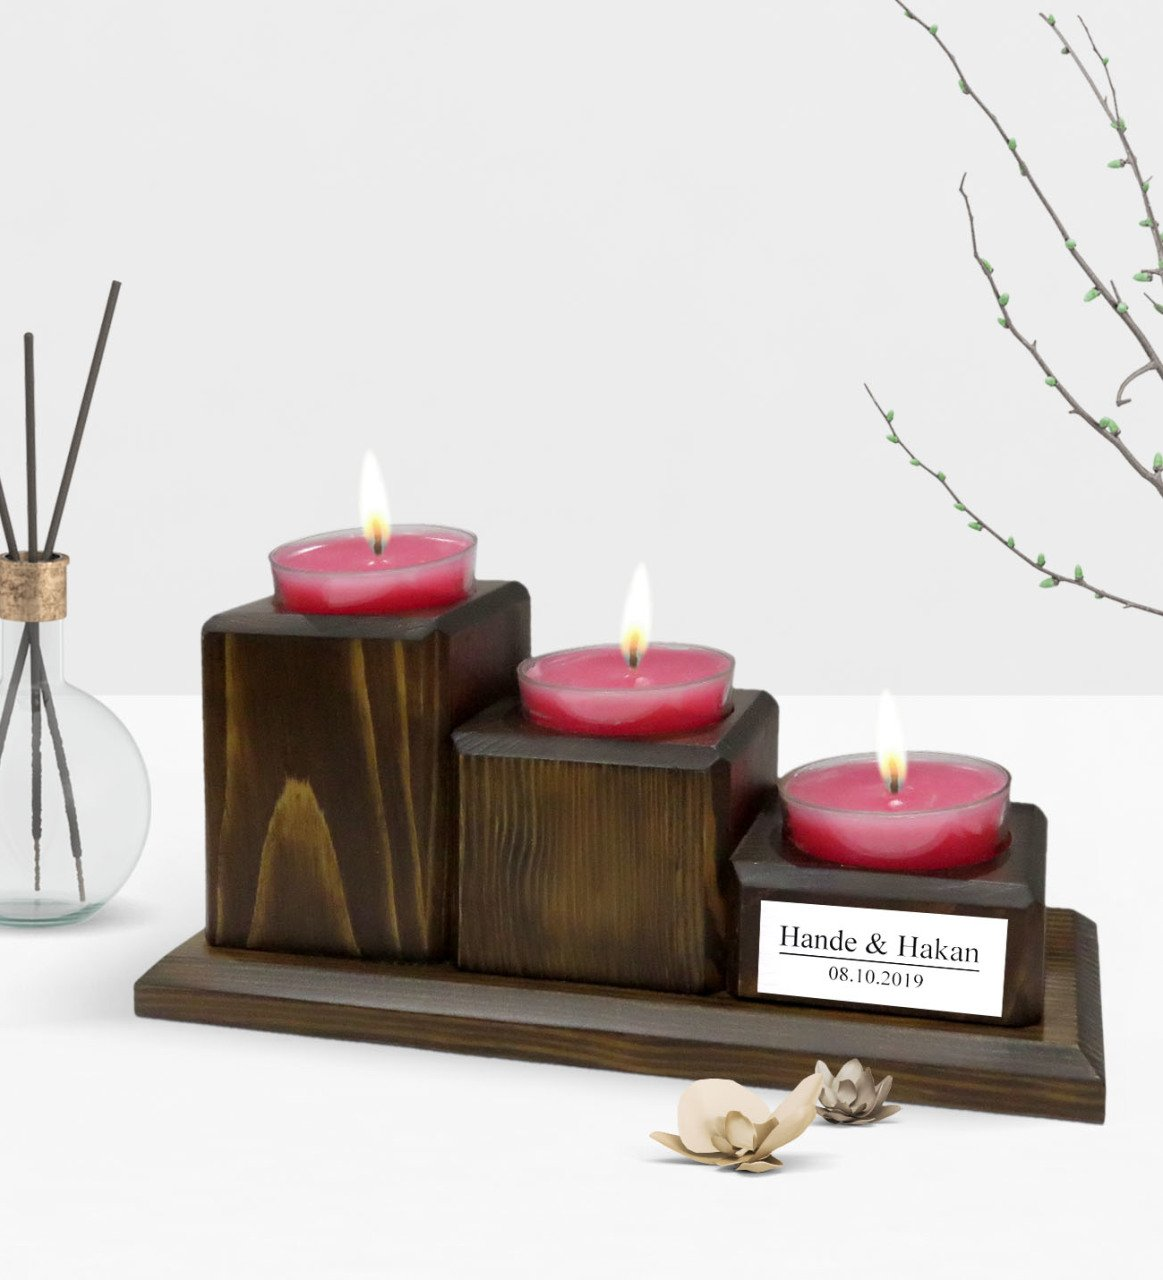 Personalized Is Decorative 3 Layer Natural Wooden Candle Holder Walnut   - title=